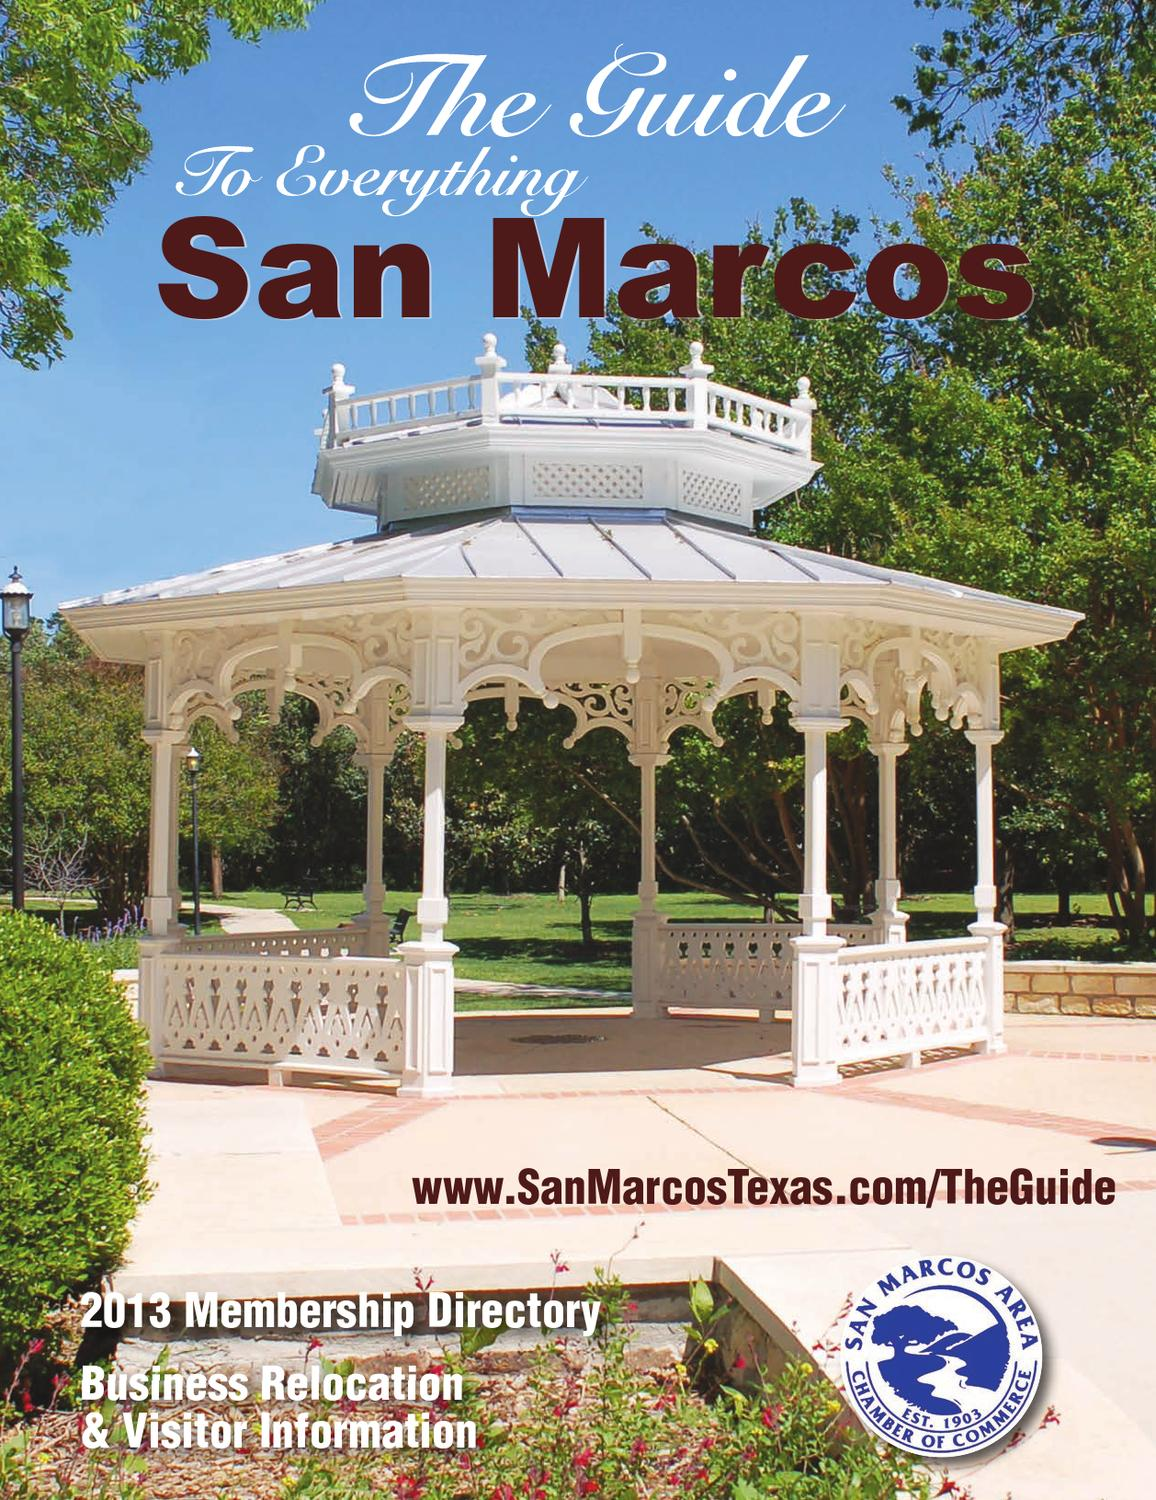 The Guide To Everything San Marcos by Publication Printer - issuu